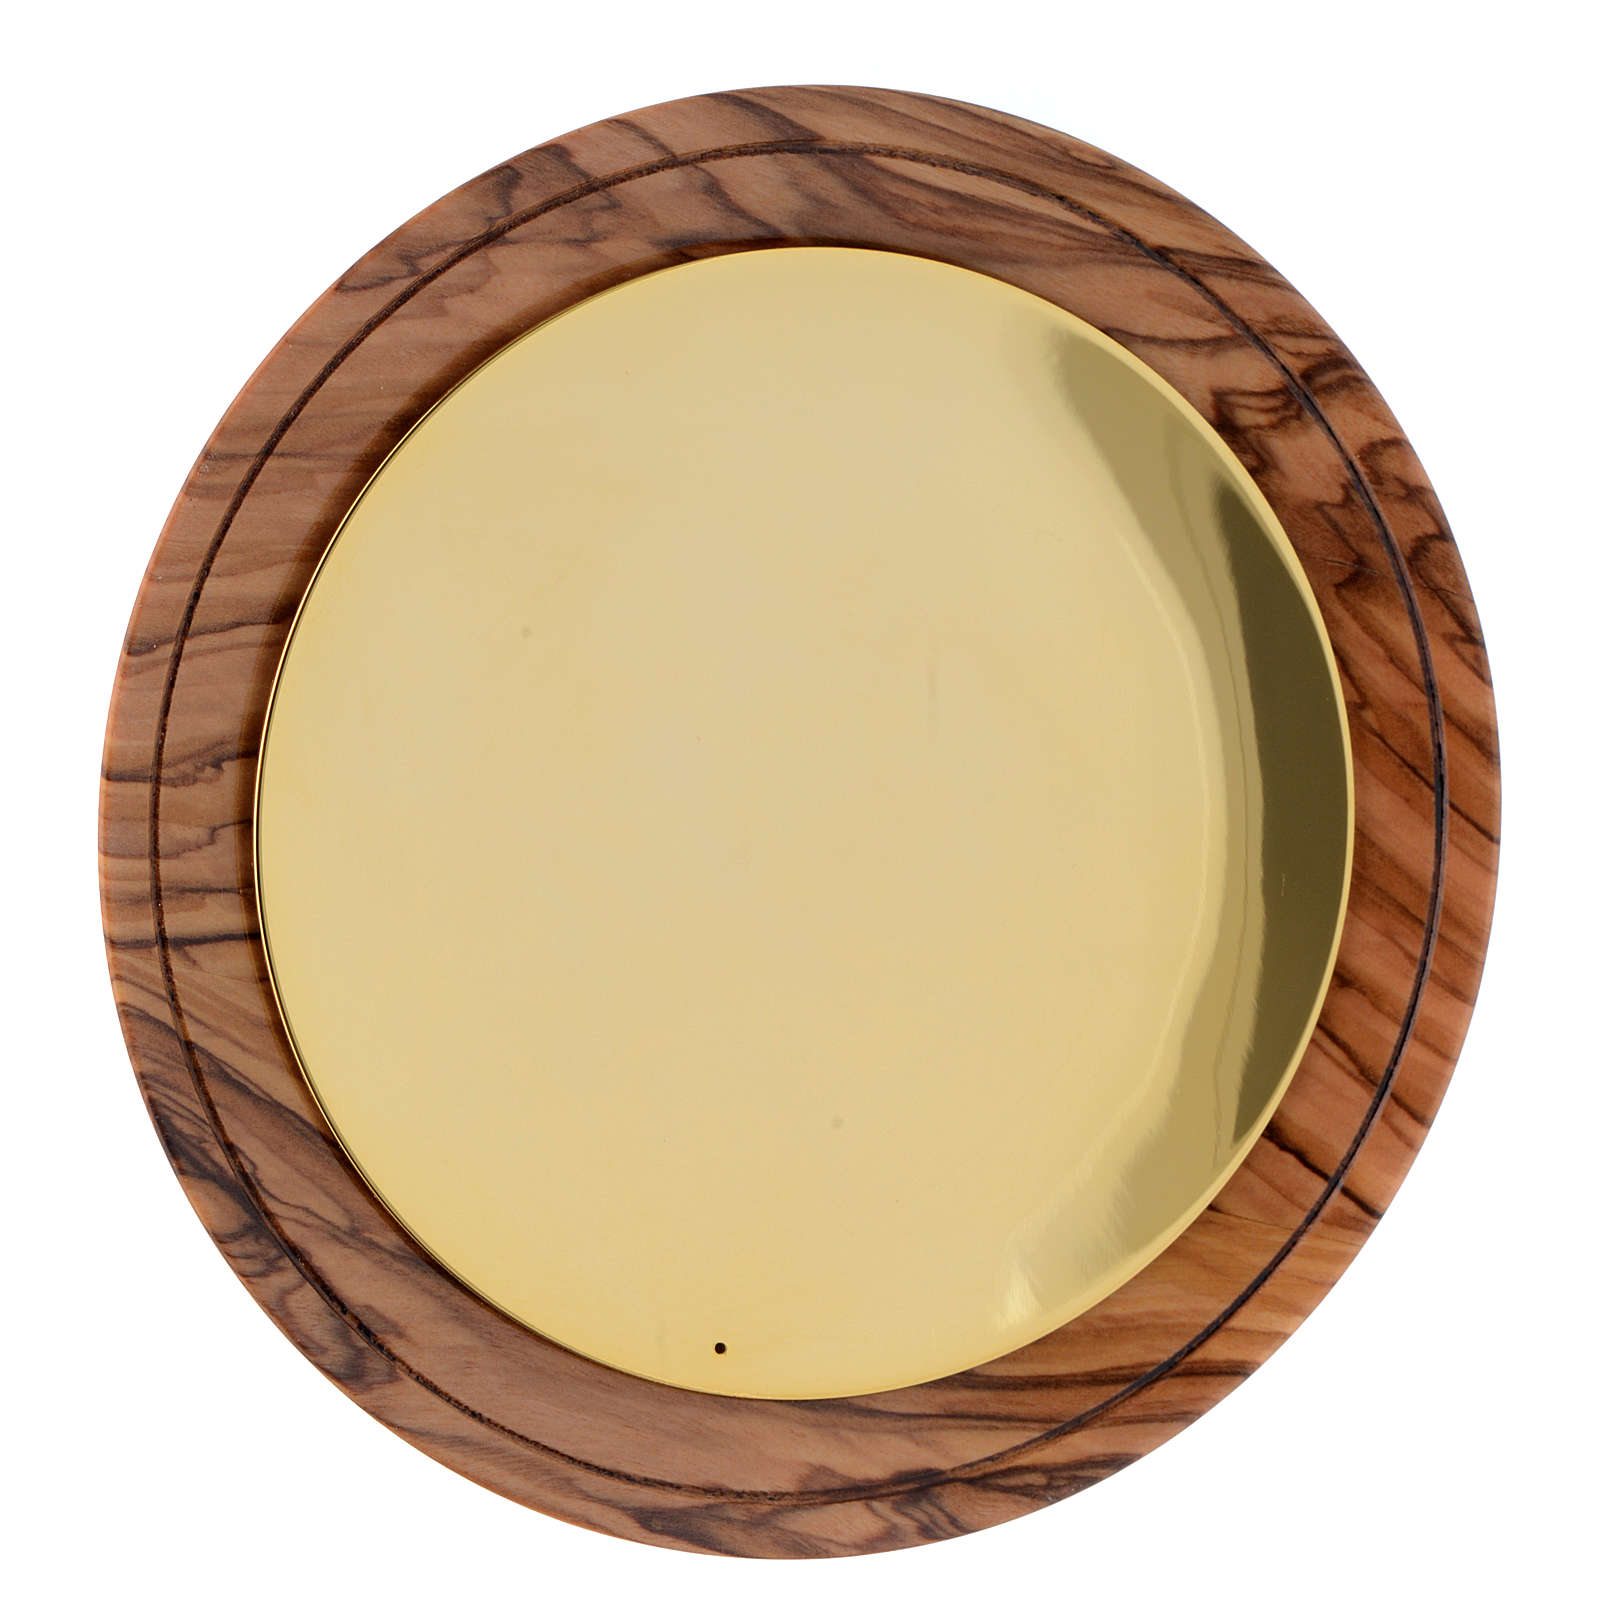 Paten in olive wood and brass from the Holy Land 4